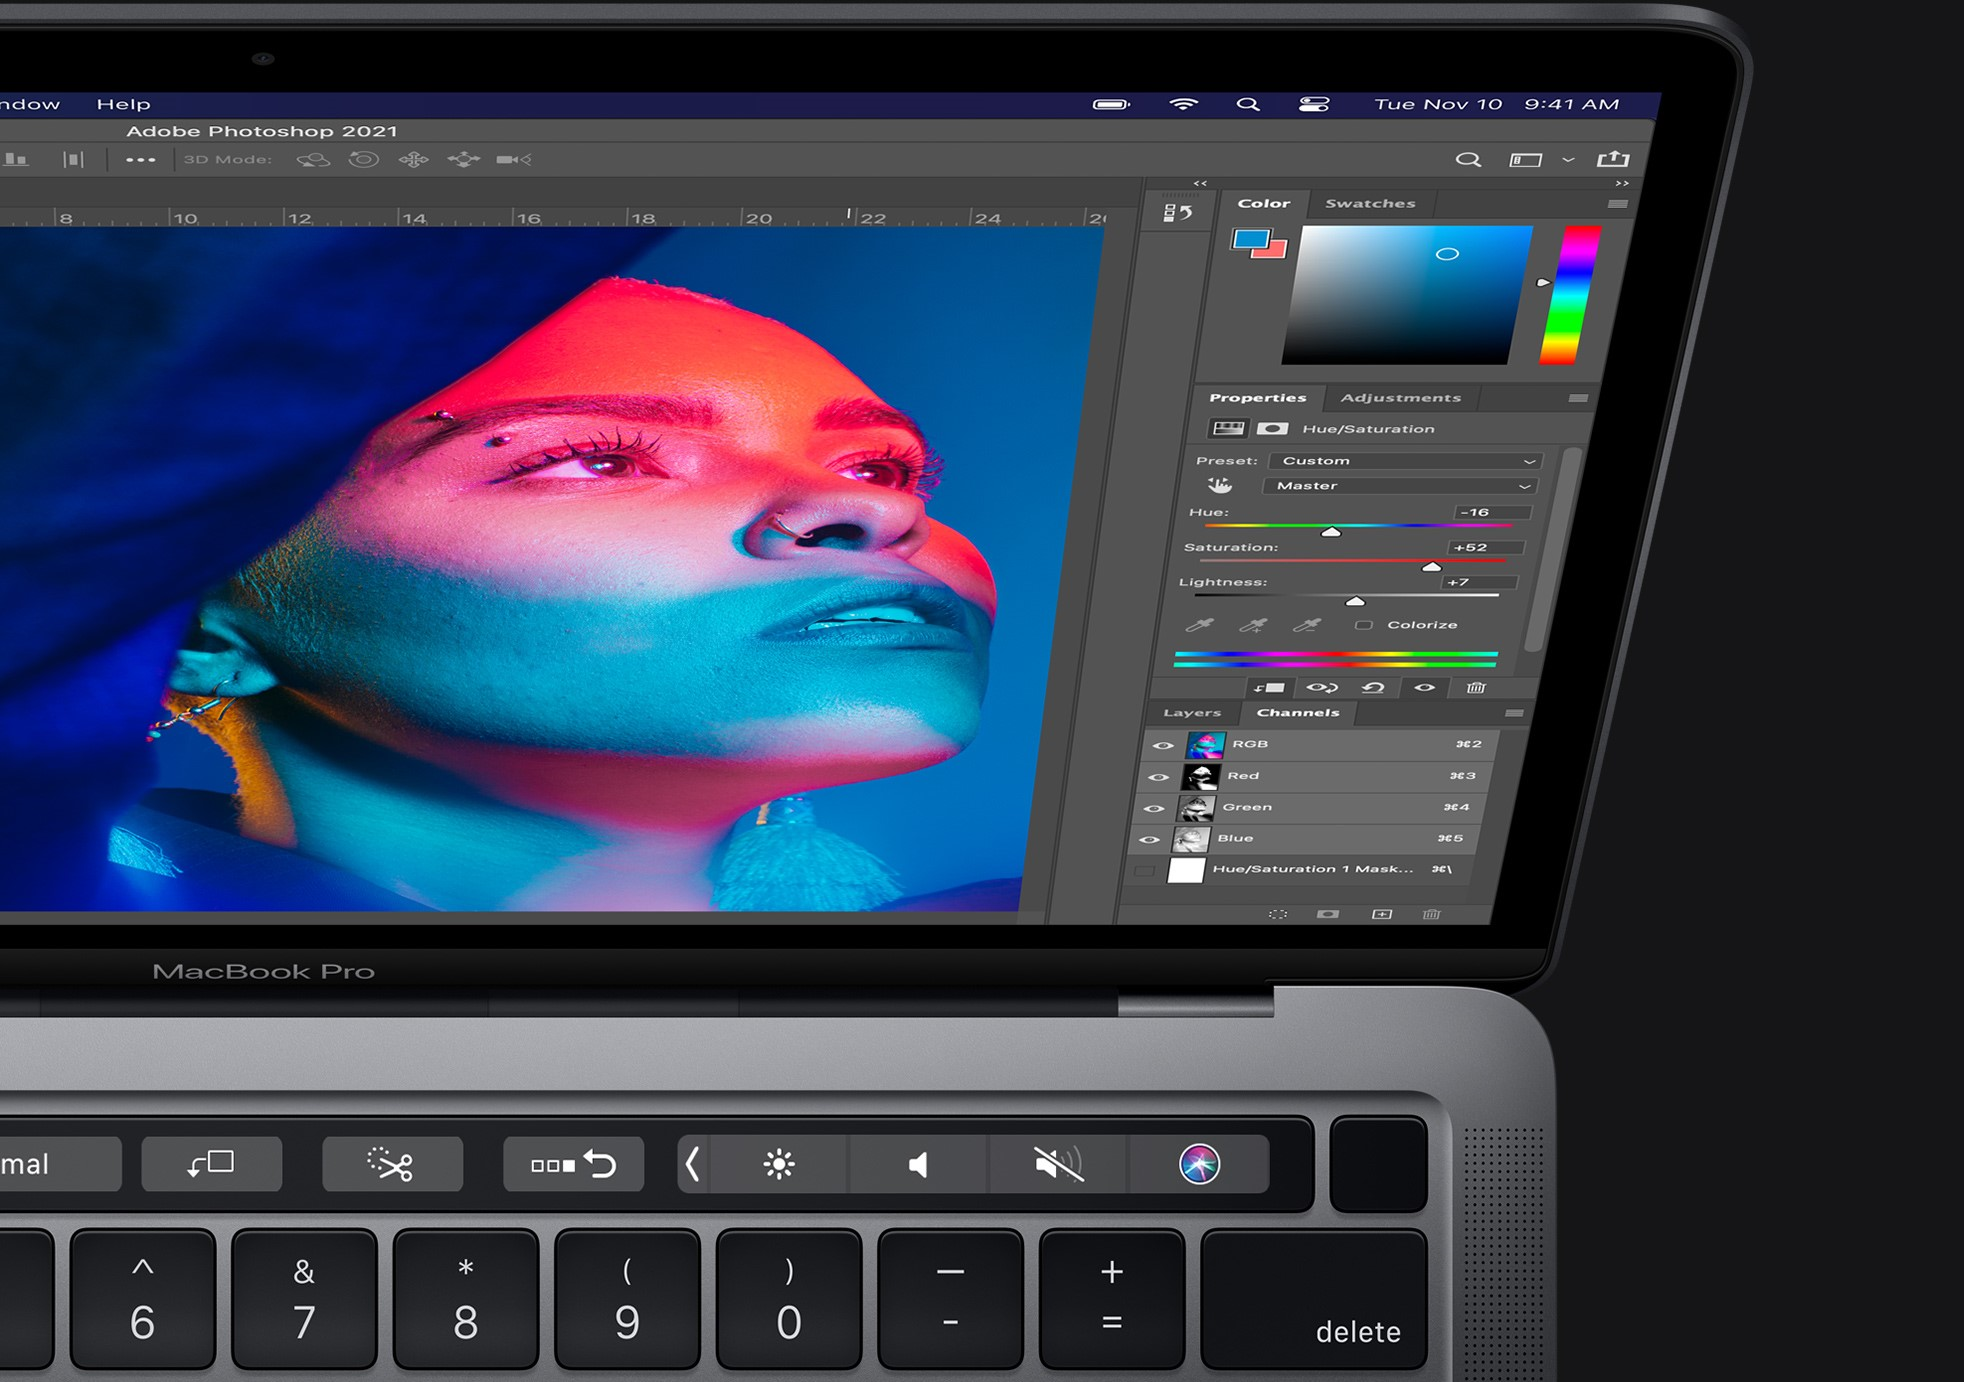 Adobe released Photoshop update for M1 processor Mac family